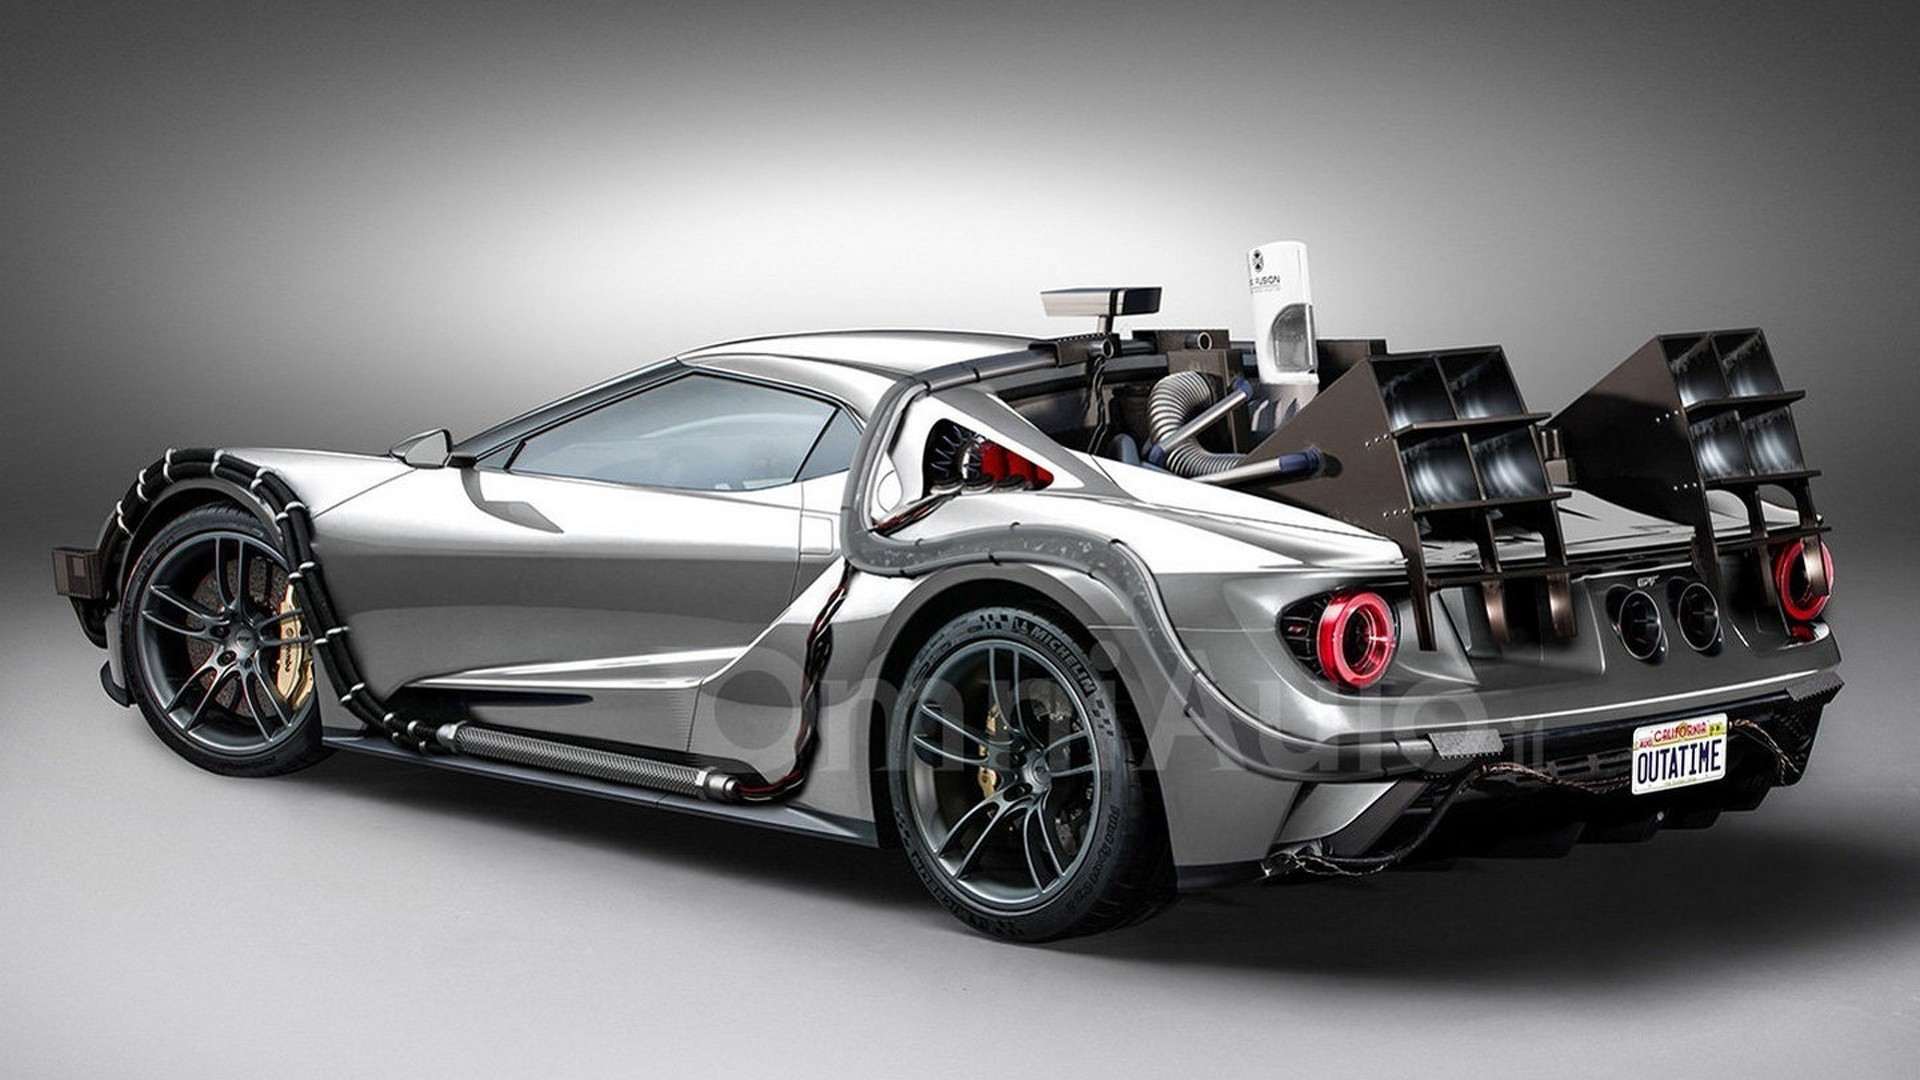 Ford Gt Concept Imagined As Time Machine From Back To The